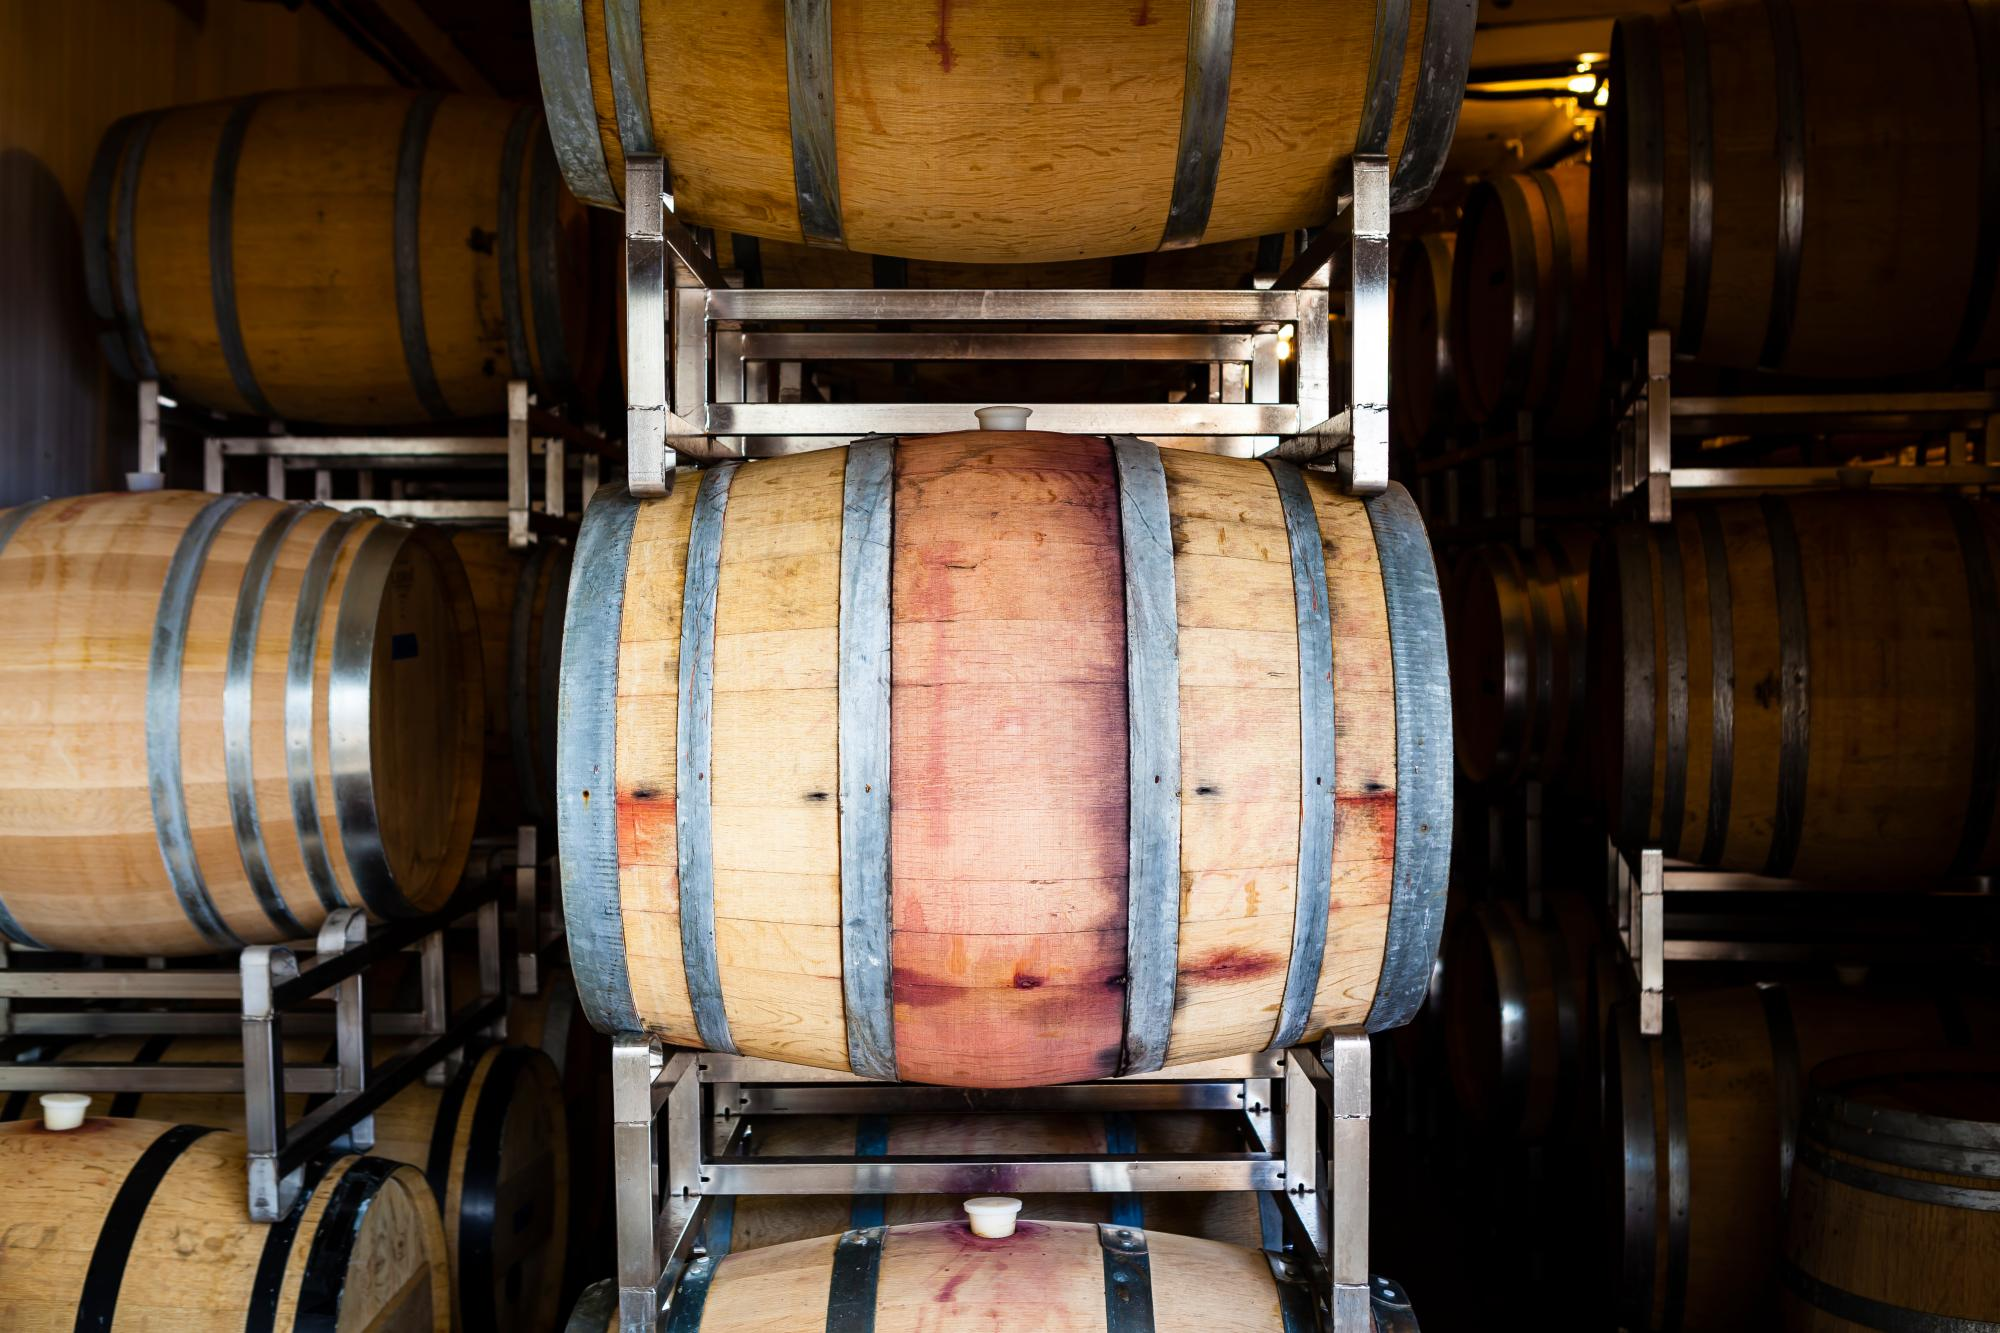 Barrel_Room_3_-_Benjamin_Gibson_Photography.jpg